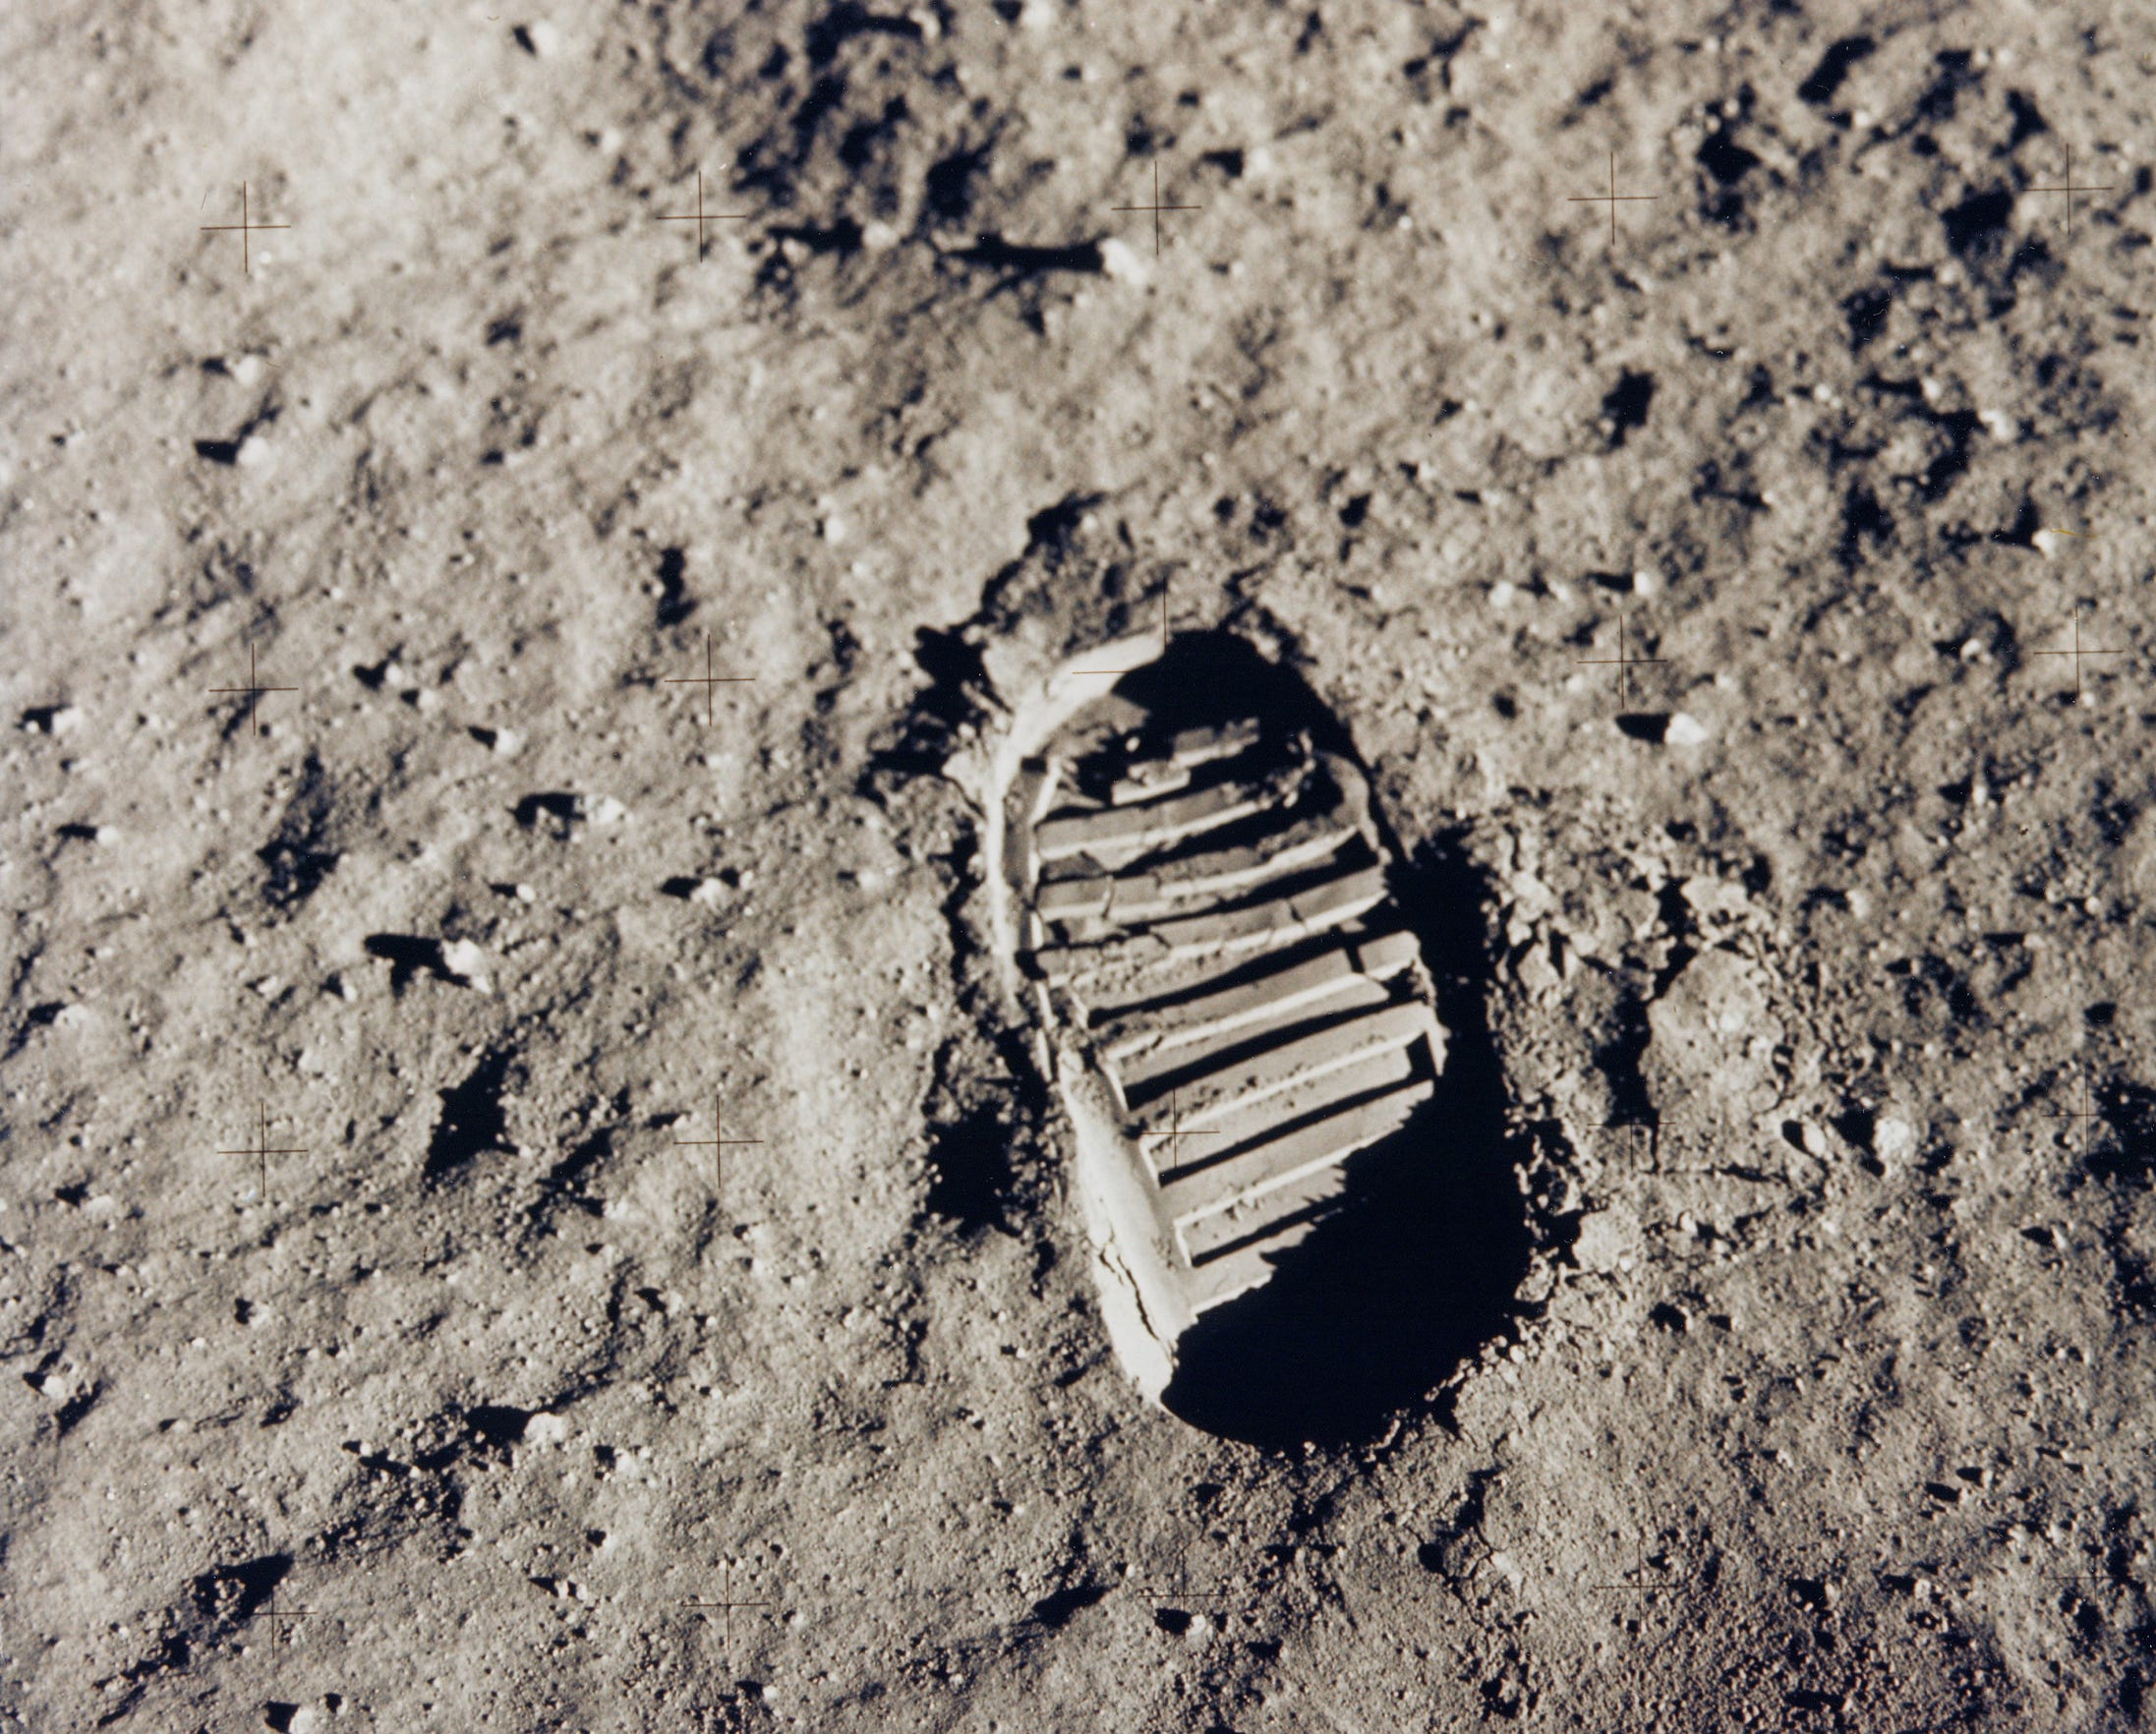 This is astronaut Edwin 'Buzz' Aldrin's boot and footprint in lunar soil July 20,1969.